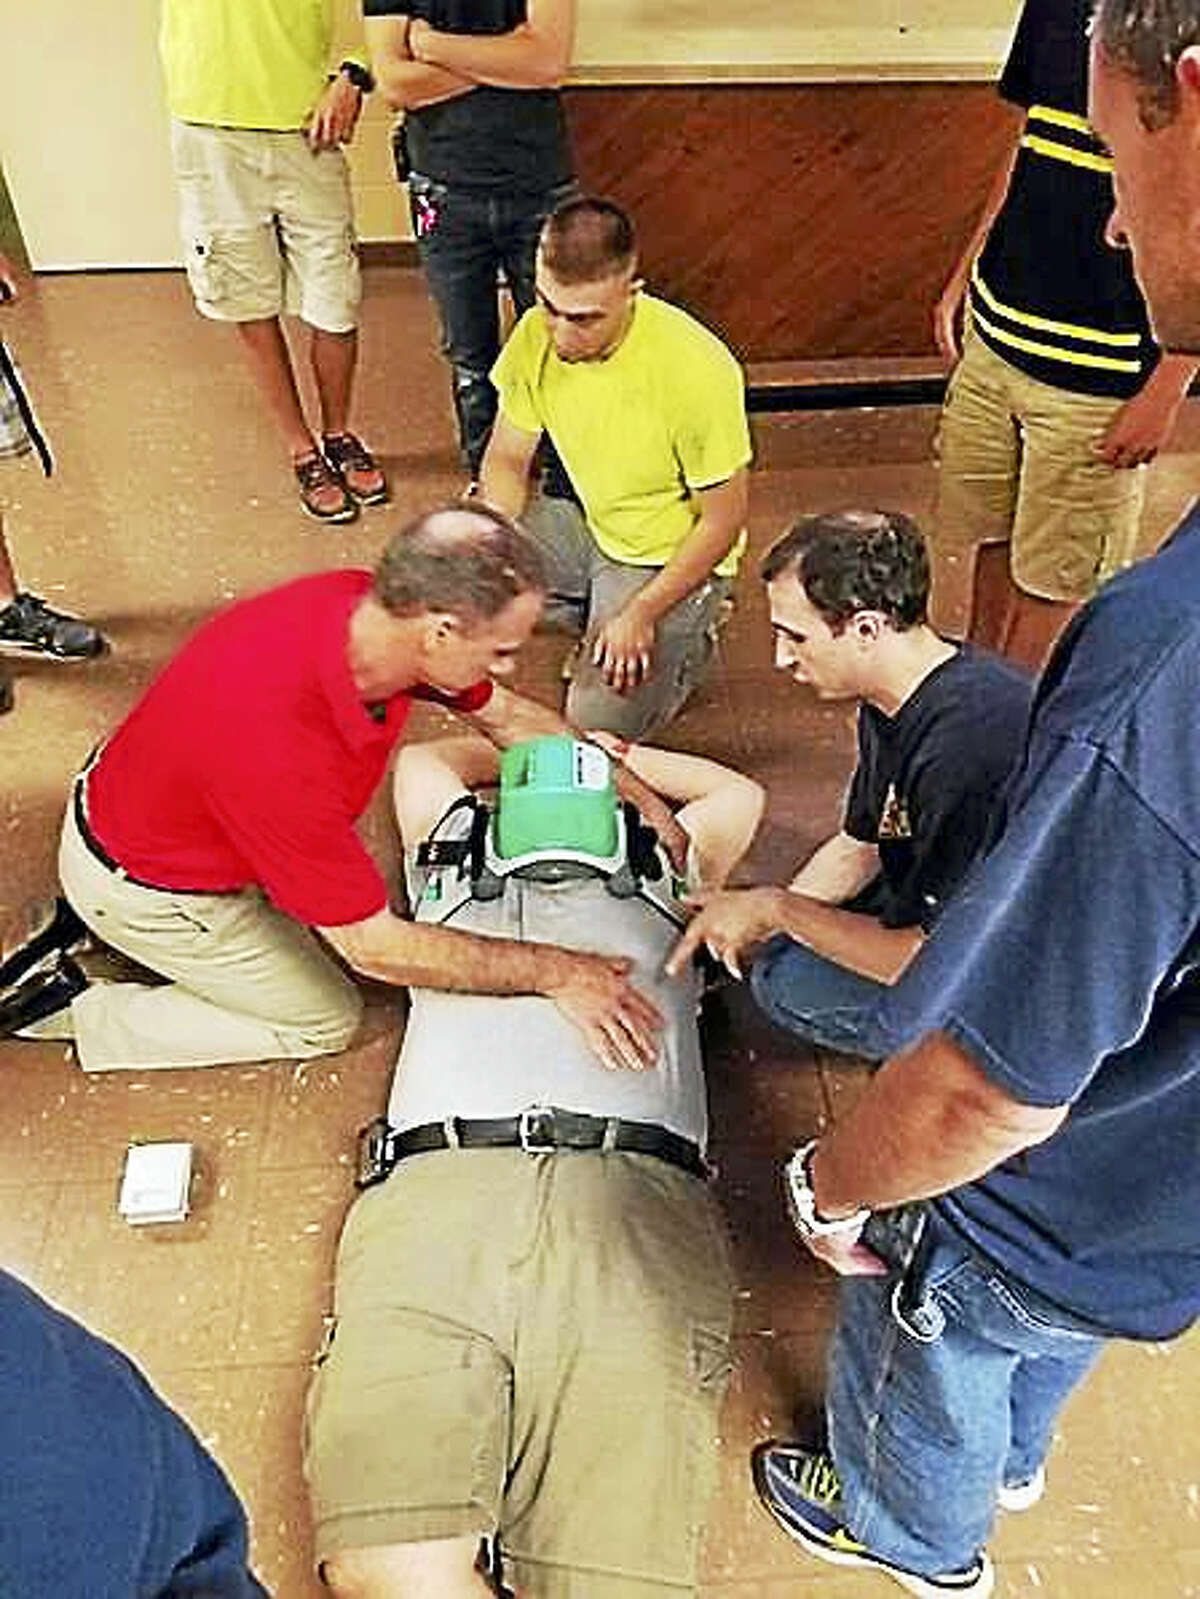 Members of the Westfield Volunteer Fire Department learn how to apply and operate the Lucas 2 mechanical chest compression device to resuscitate victims of sudden cardiac arrest.